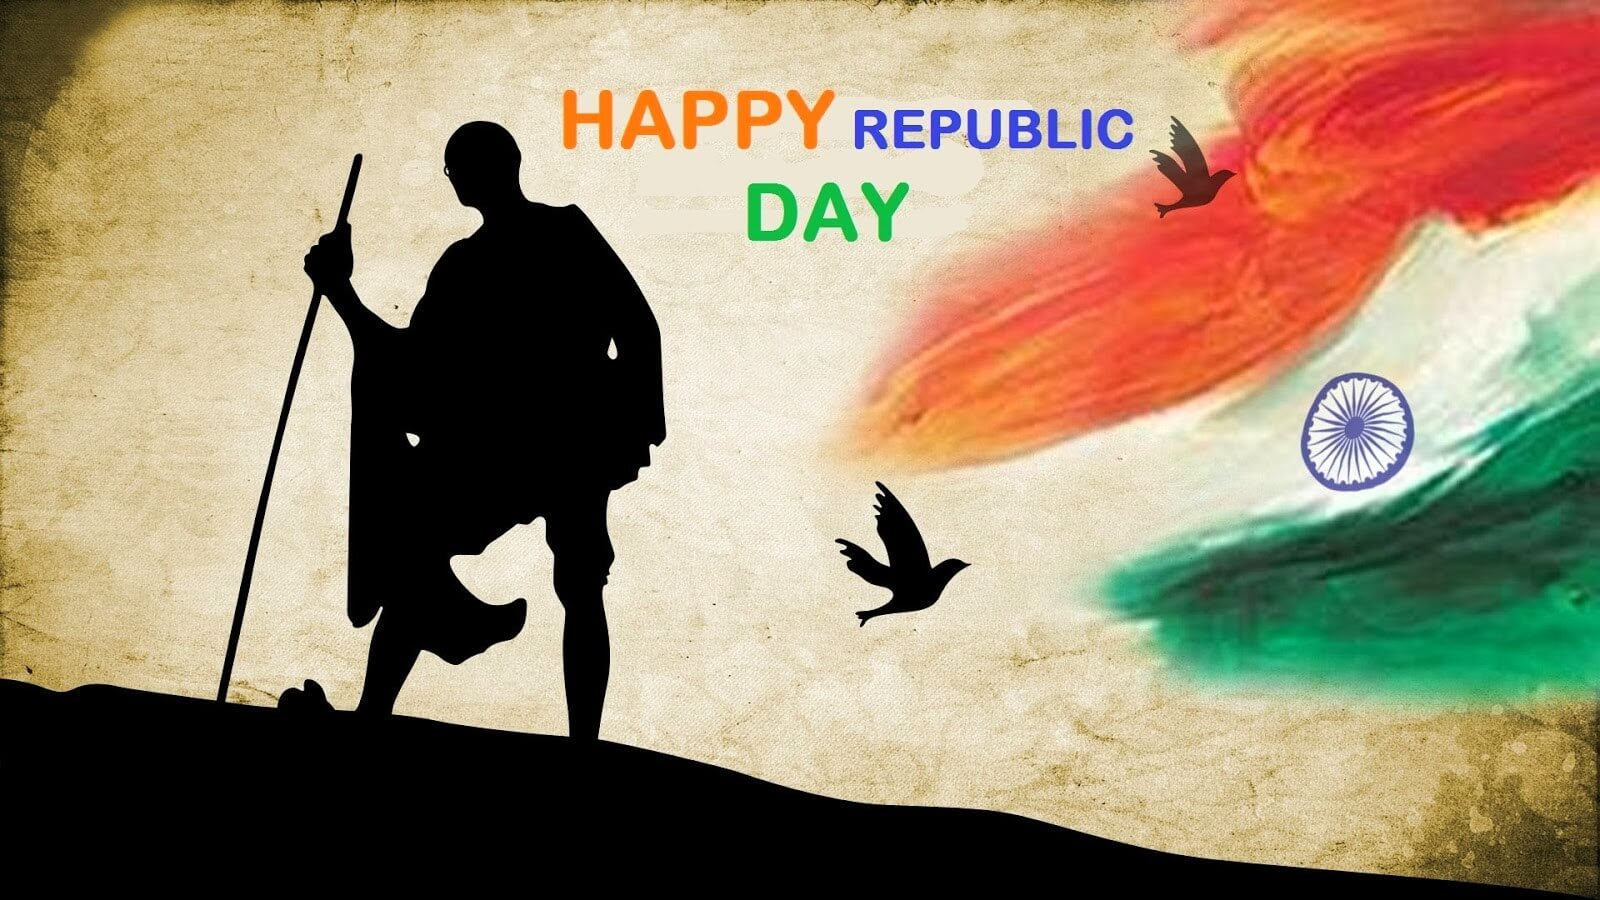 happy republic day wishes india mahatma gandhi 26 january hd wallpaper